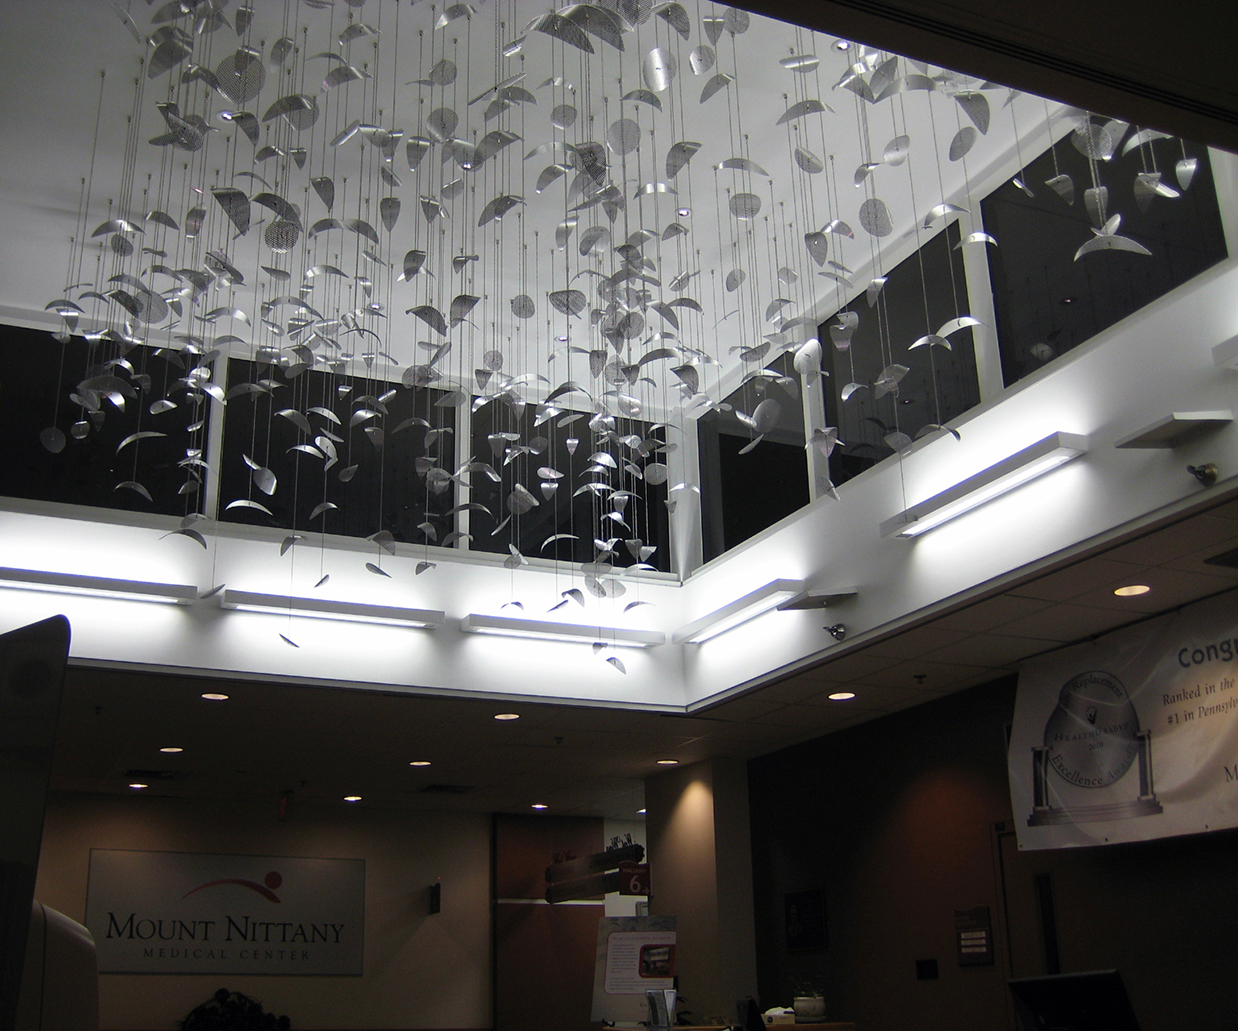 Constellation suspended sculpture by Talley Fisher,located at Mount Nittany Medical Center